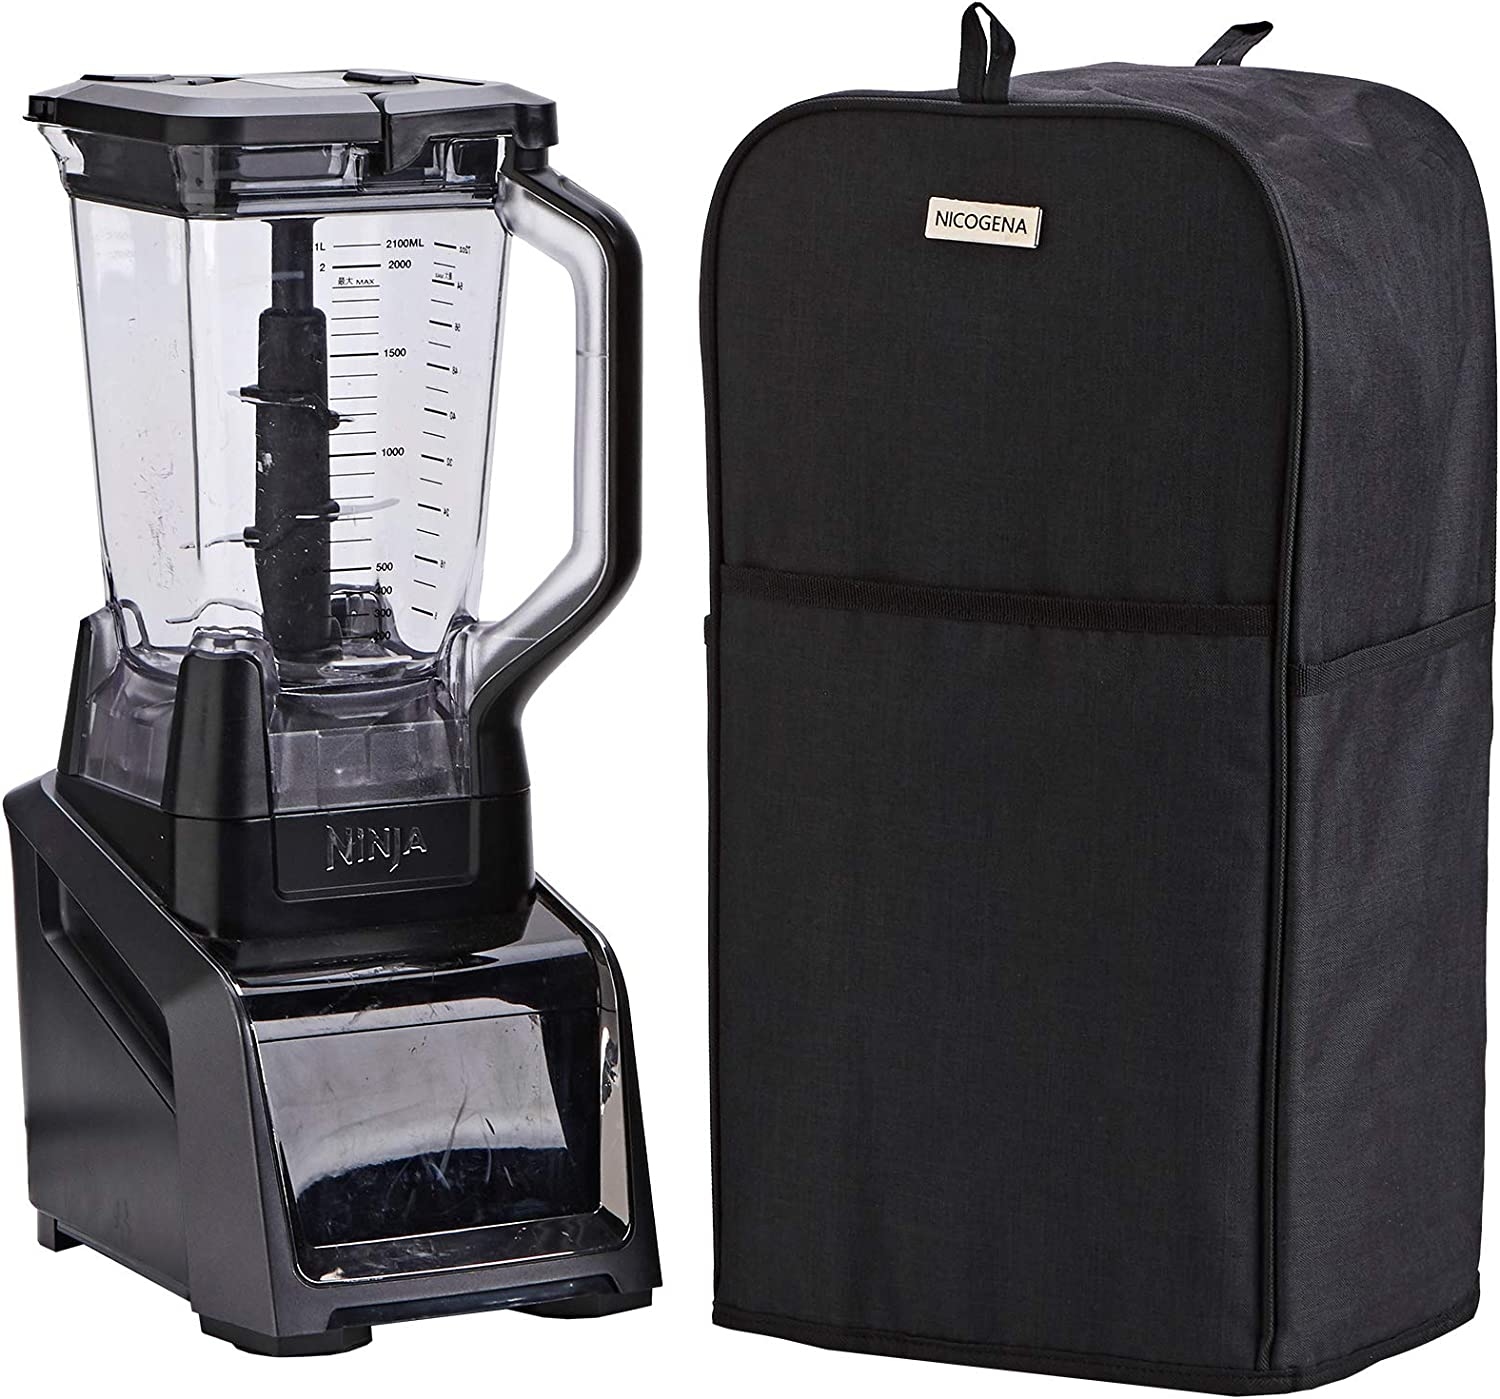 NICOGENA Blender Dust Cover with Accessory Pocket Compatible with Ninja Foodi, Black